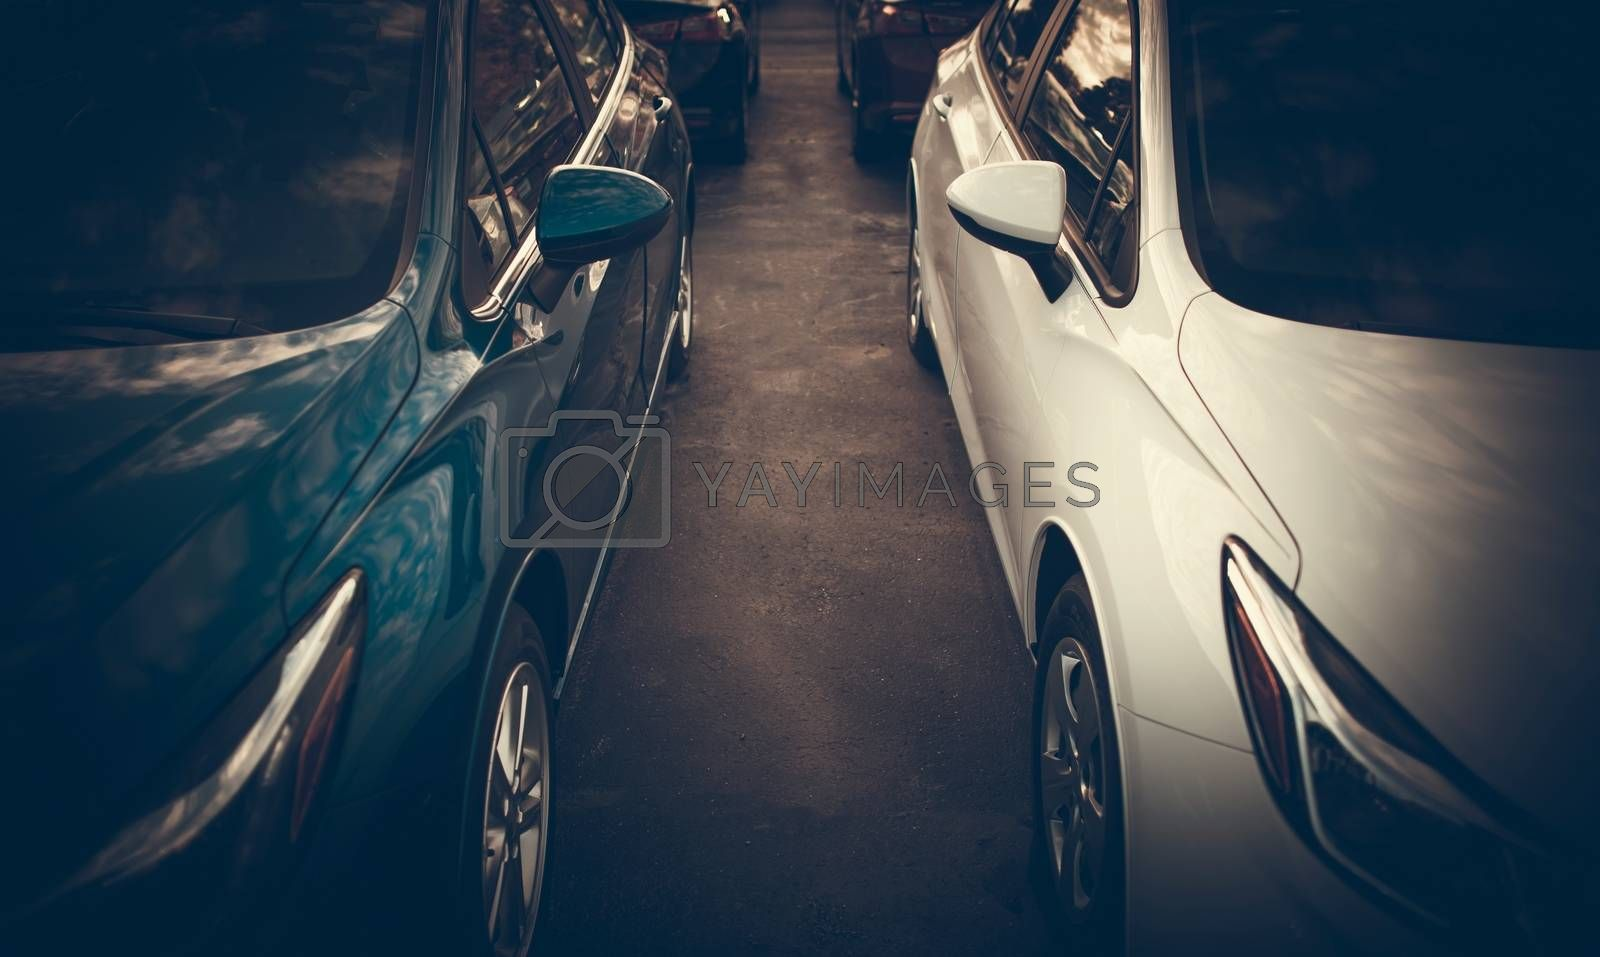 Tight Car Parking Spaces Theme. Modern Vehicles Side by Side Closeup Photo.